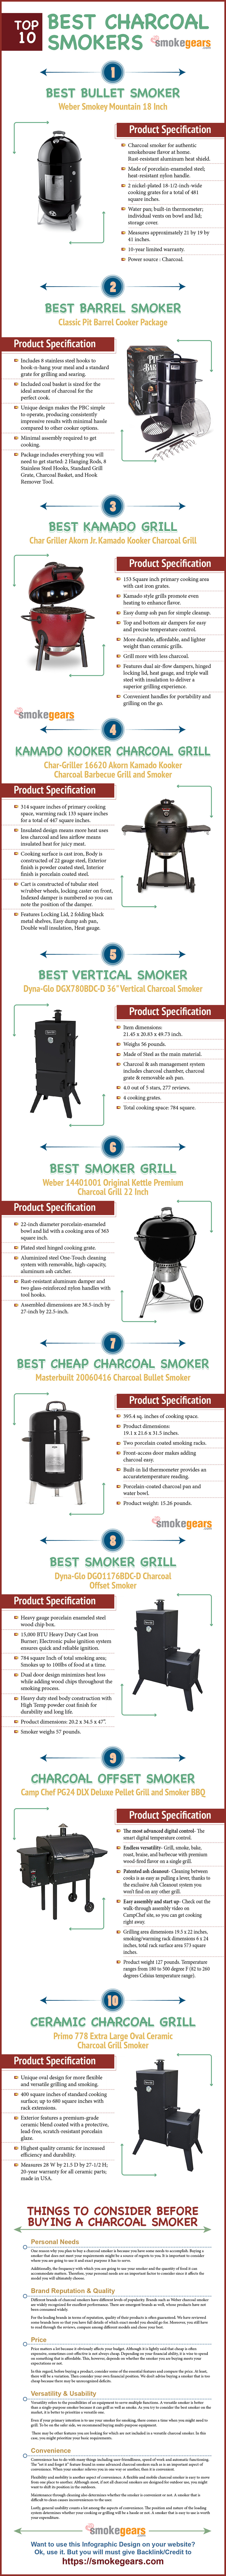 Top 10 Best Charcoal Smokers Infographic Design